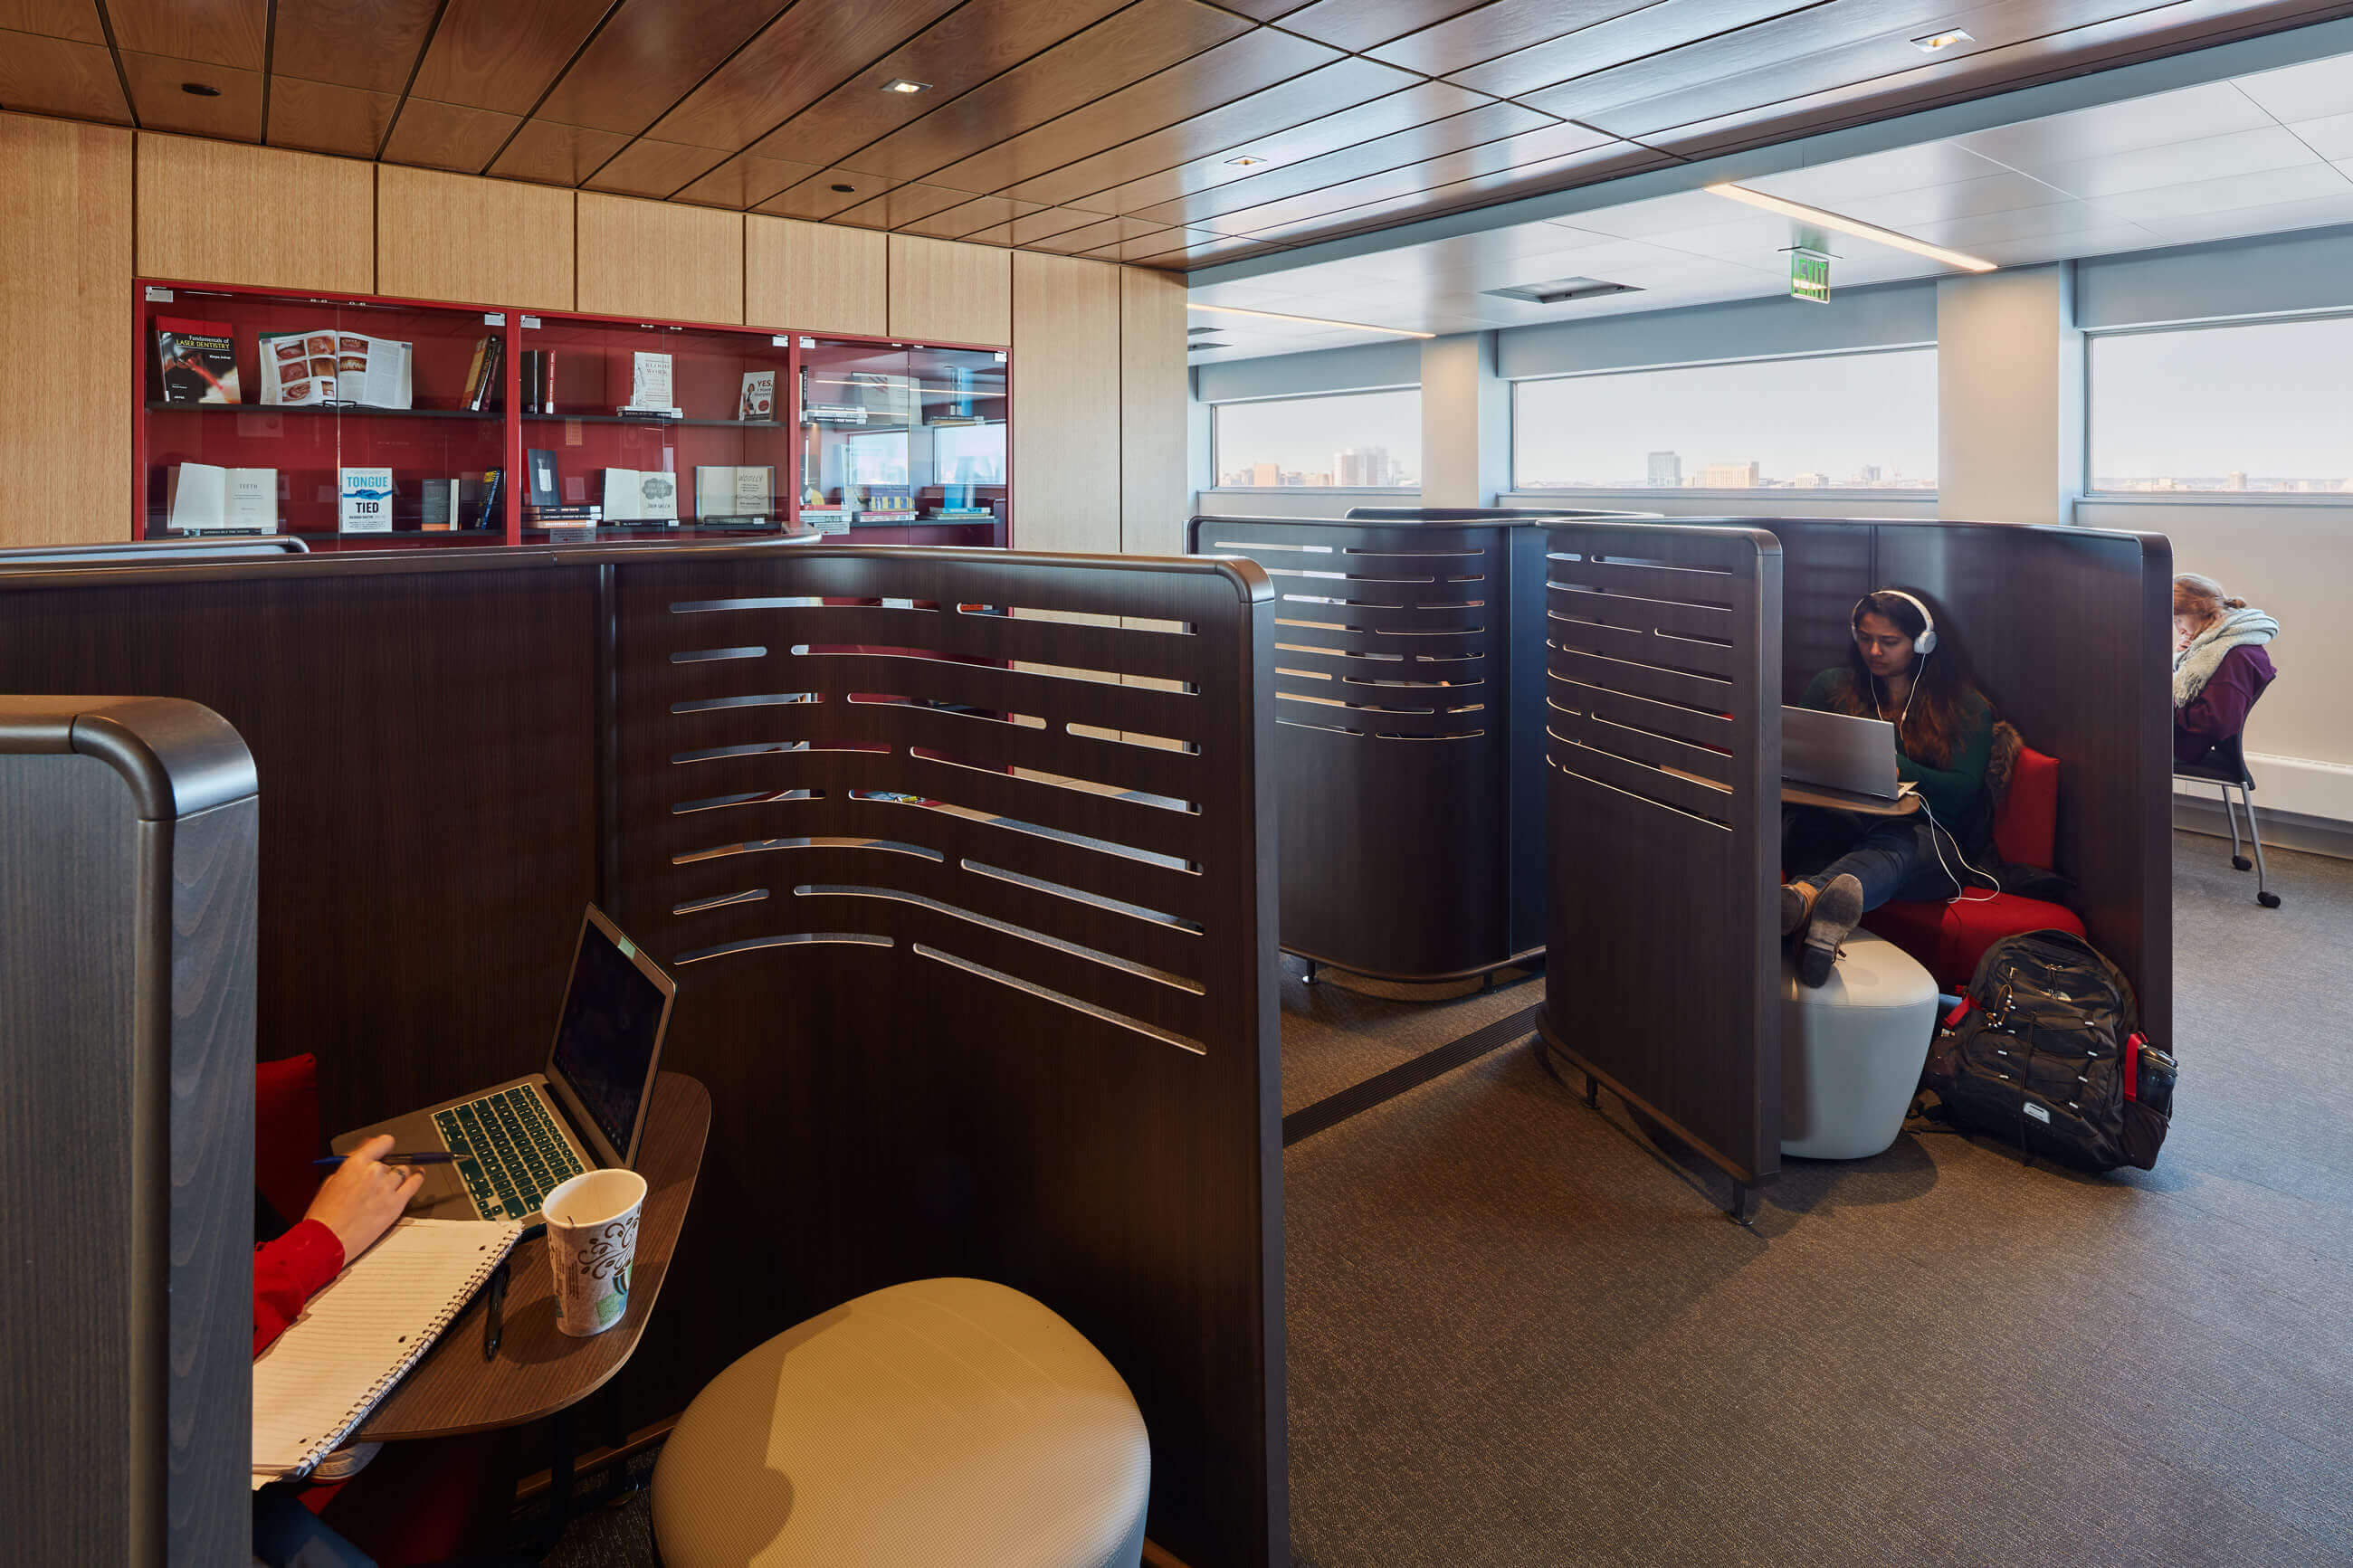 Individual work pods for graduate student study at BU's Alumni Medical Library, renovated by Finegold Alexander Architects